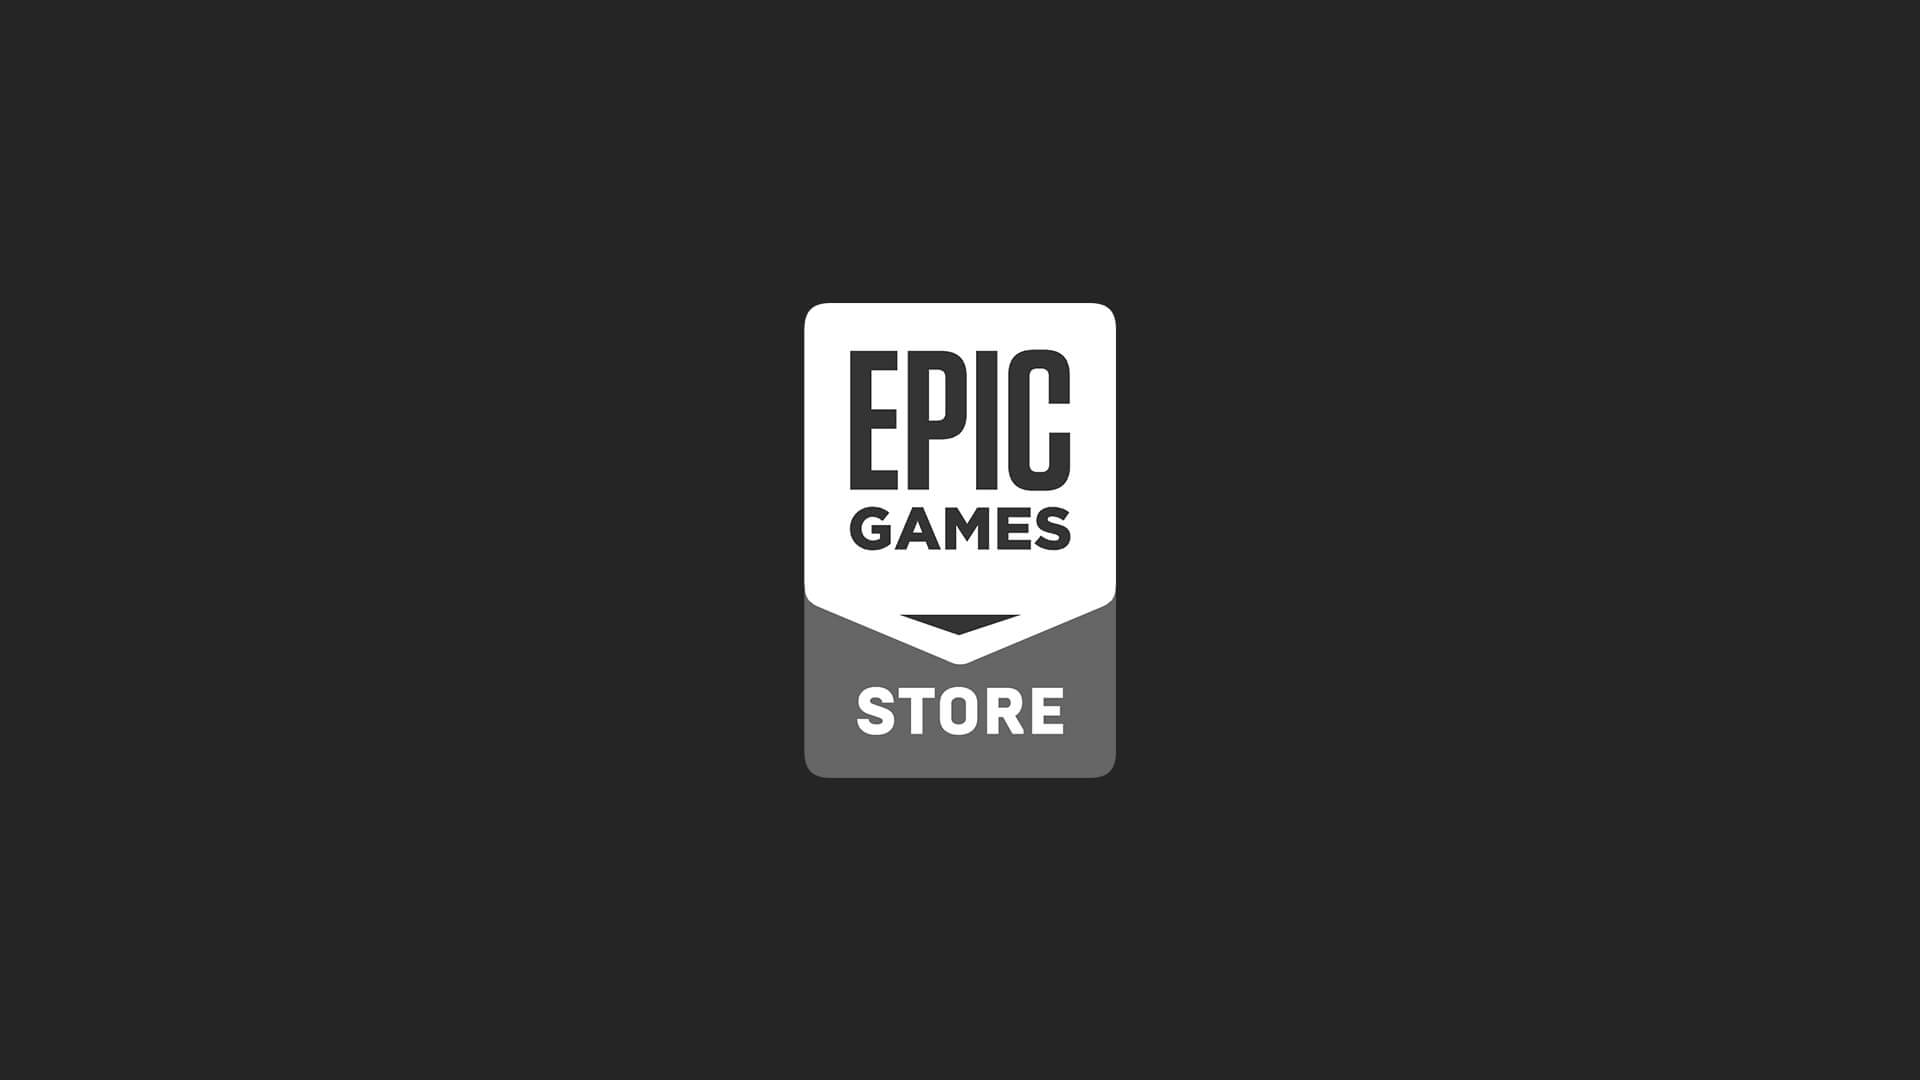 Epic's Statement on Misinformation & Abuse